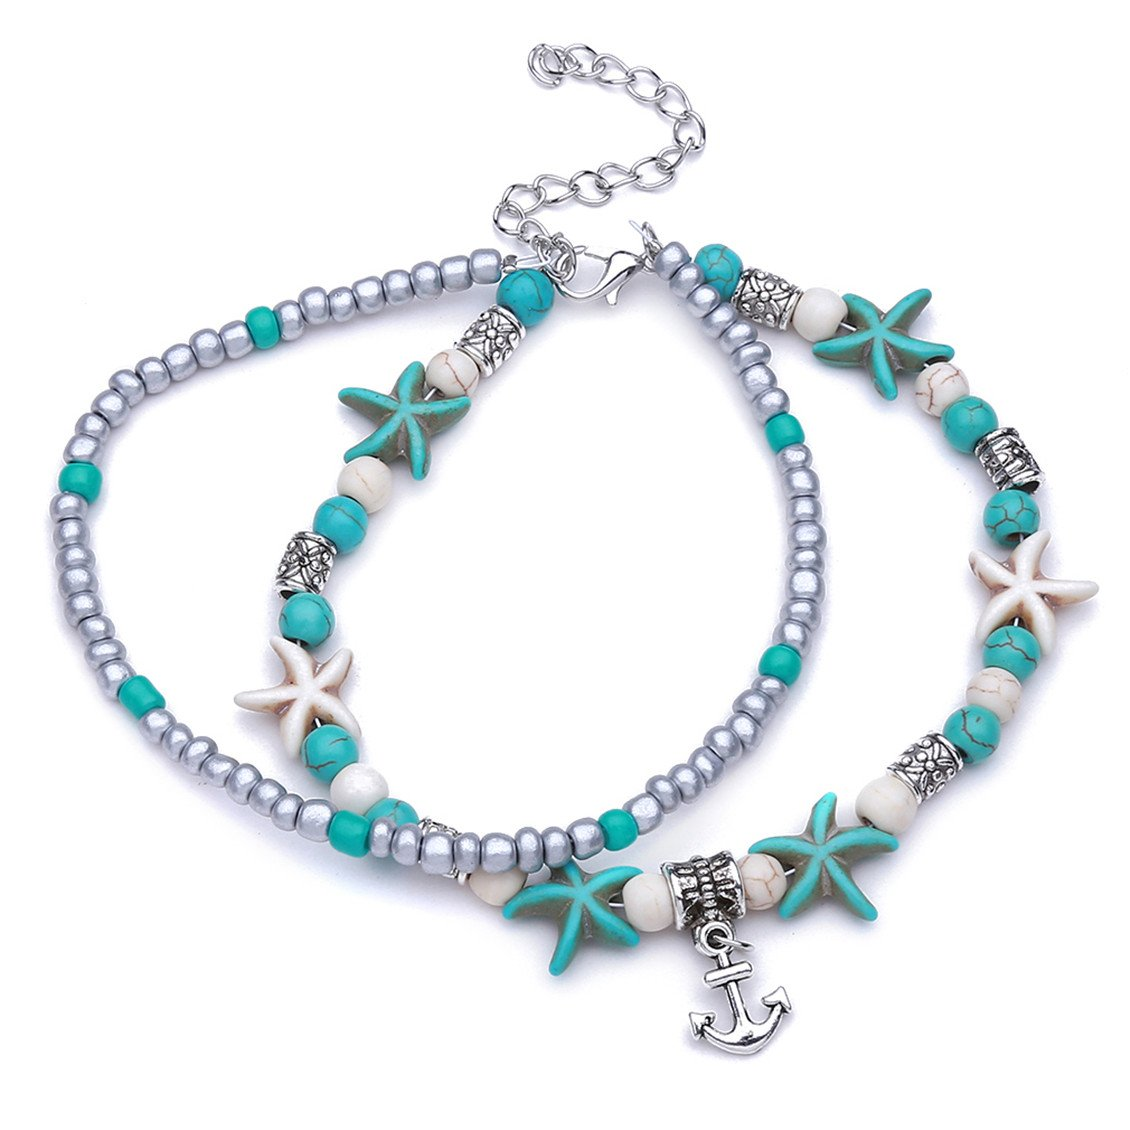 Dolland Blue Turquoise Starfish Anklets Star Sea Beads Anklets Multi Layer Ankle Foot Bracelet Jewelry Bohemian Handmade Sandals Anklet for Women,Starfish Anchor Multi-Layer,As Description